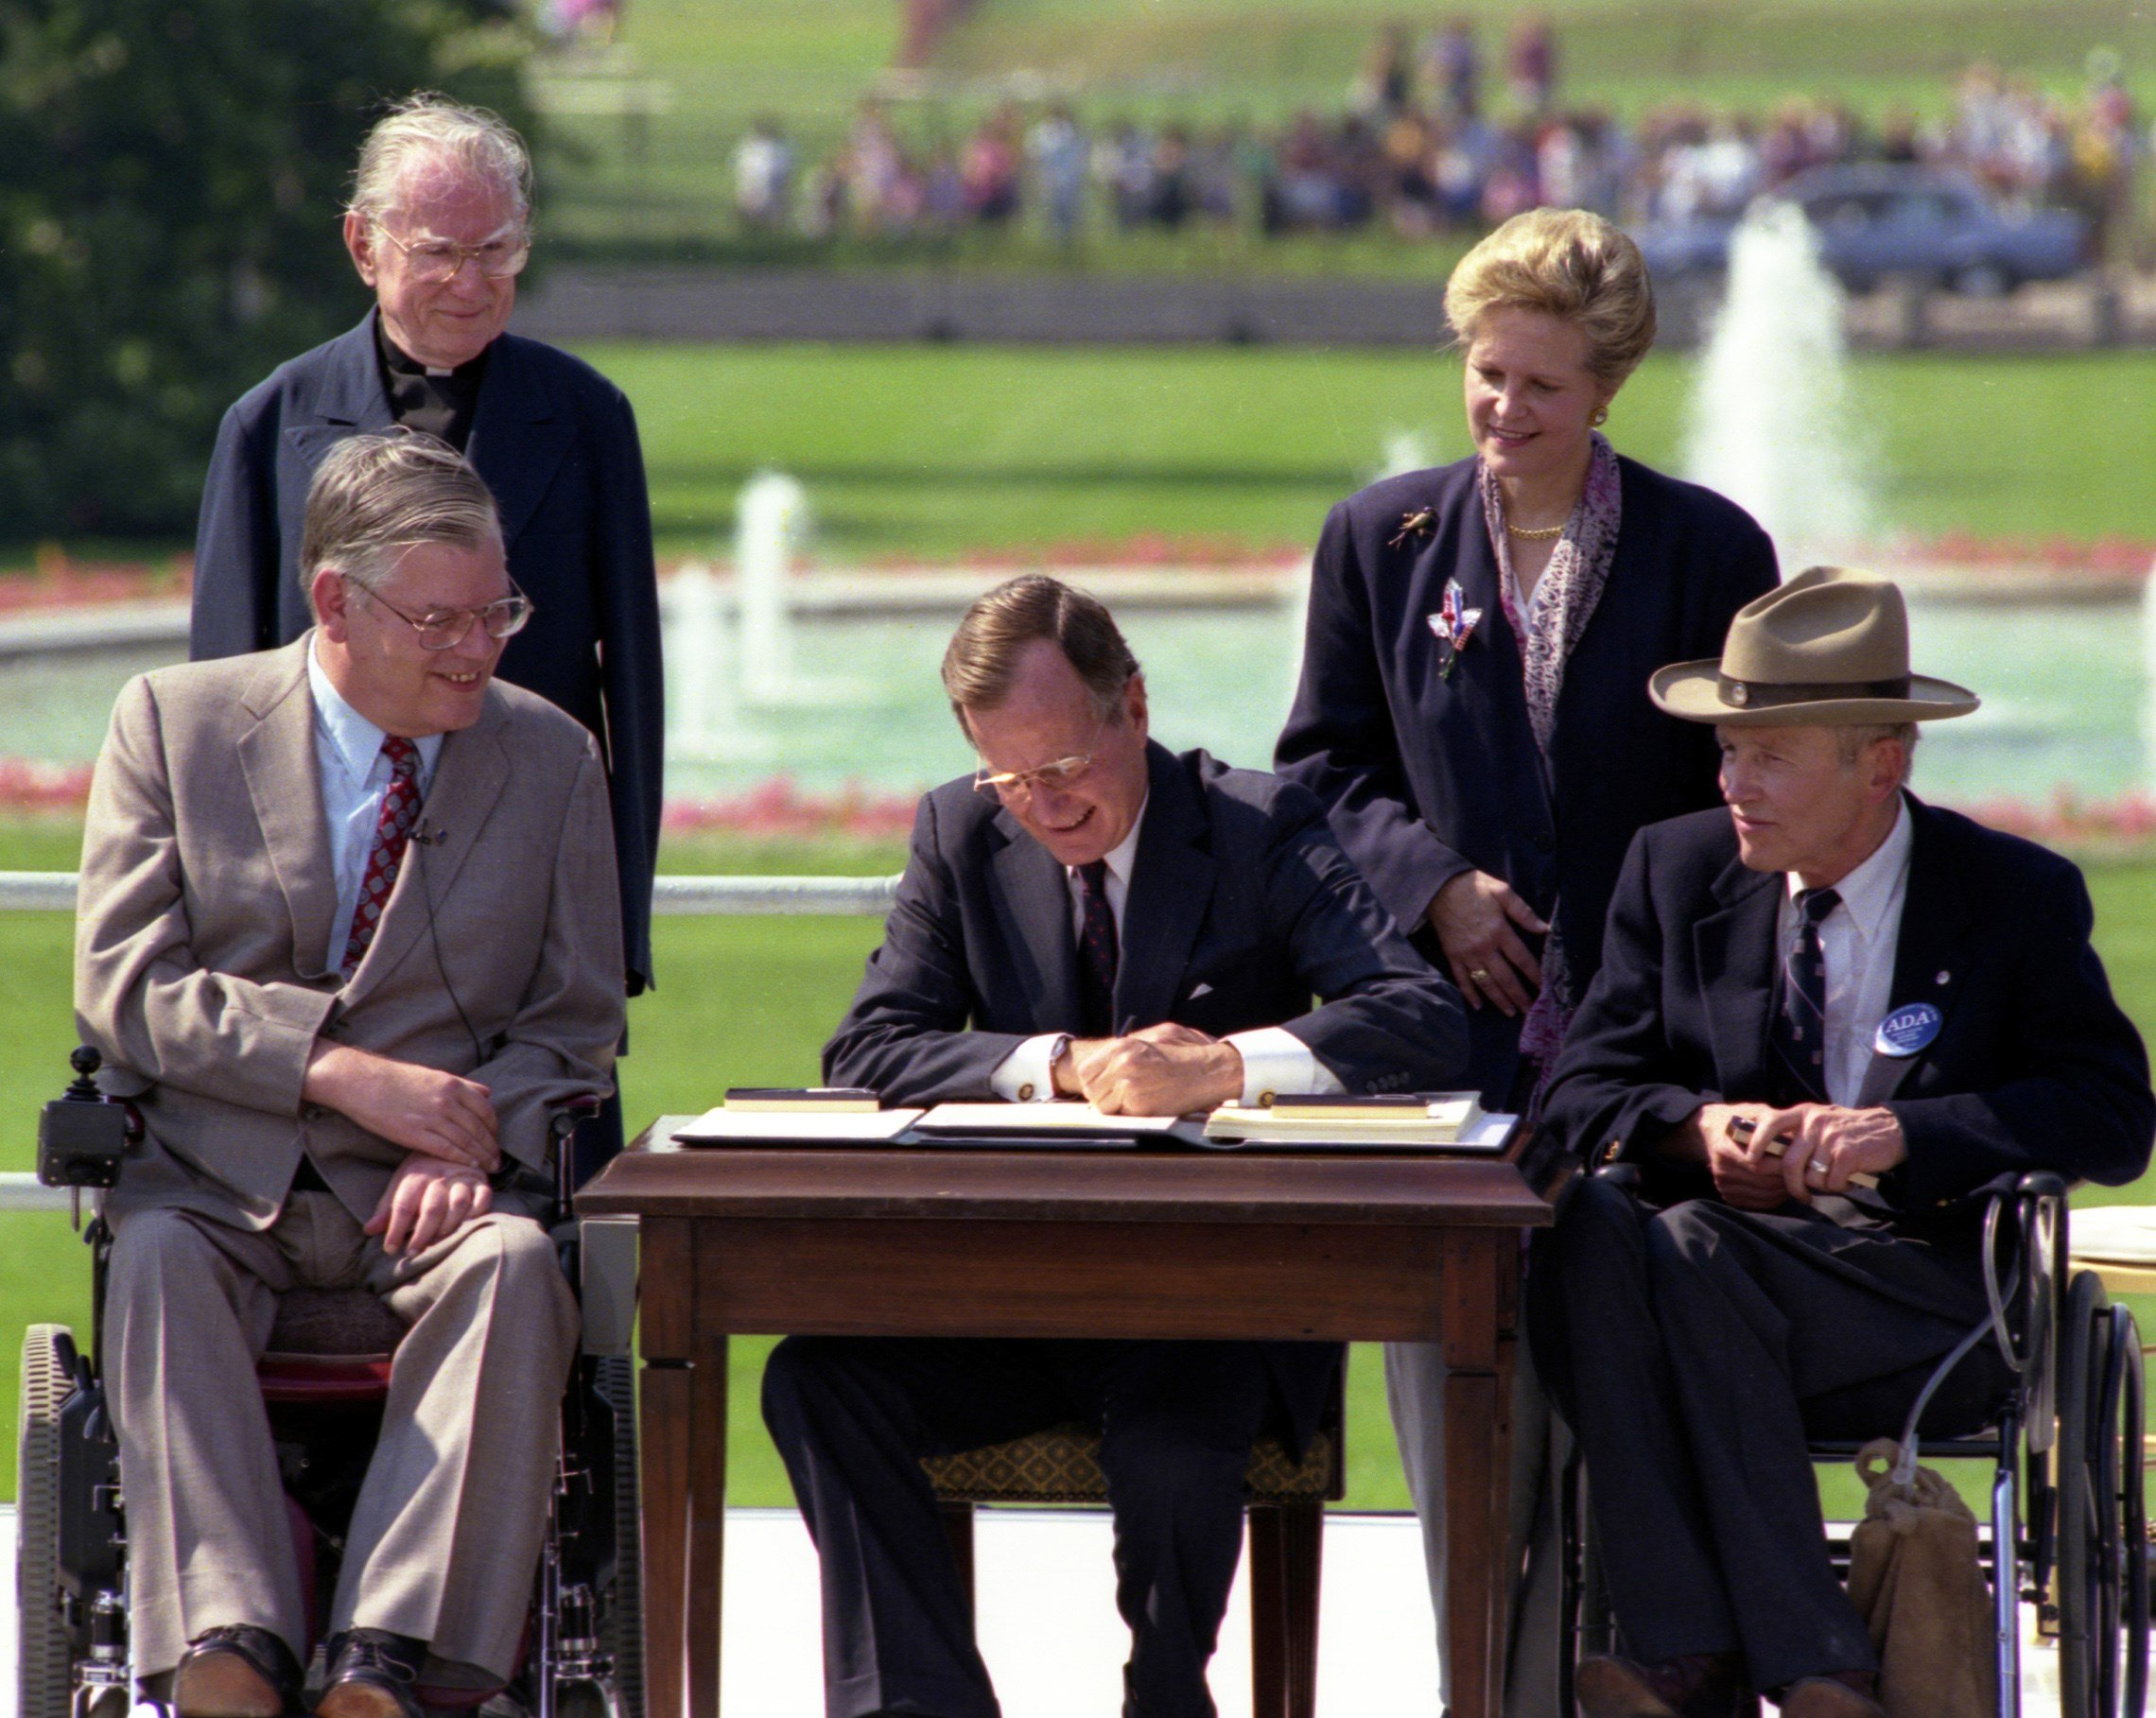 President Bush signs the ADA in 1990. Photo: ADA National Network.